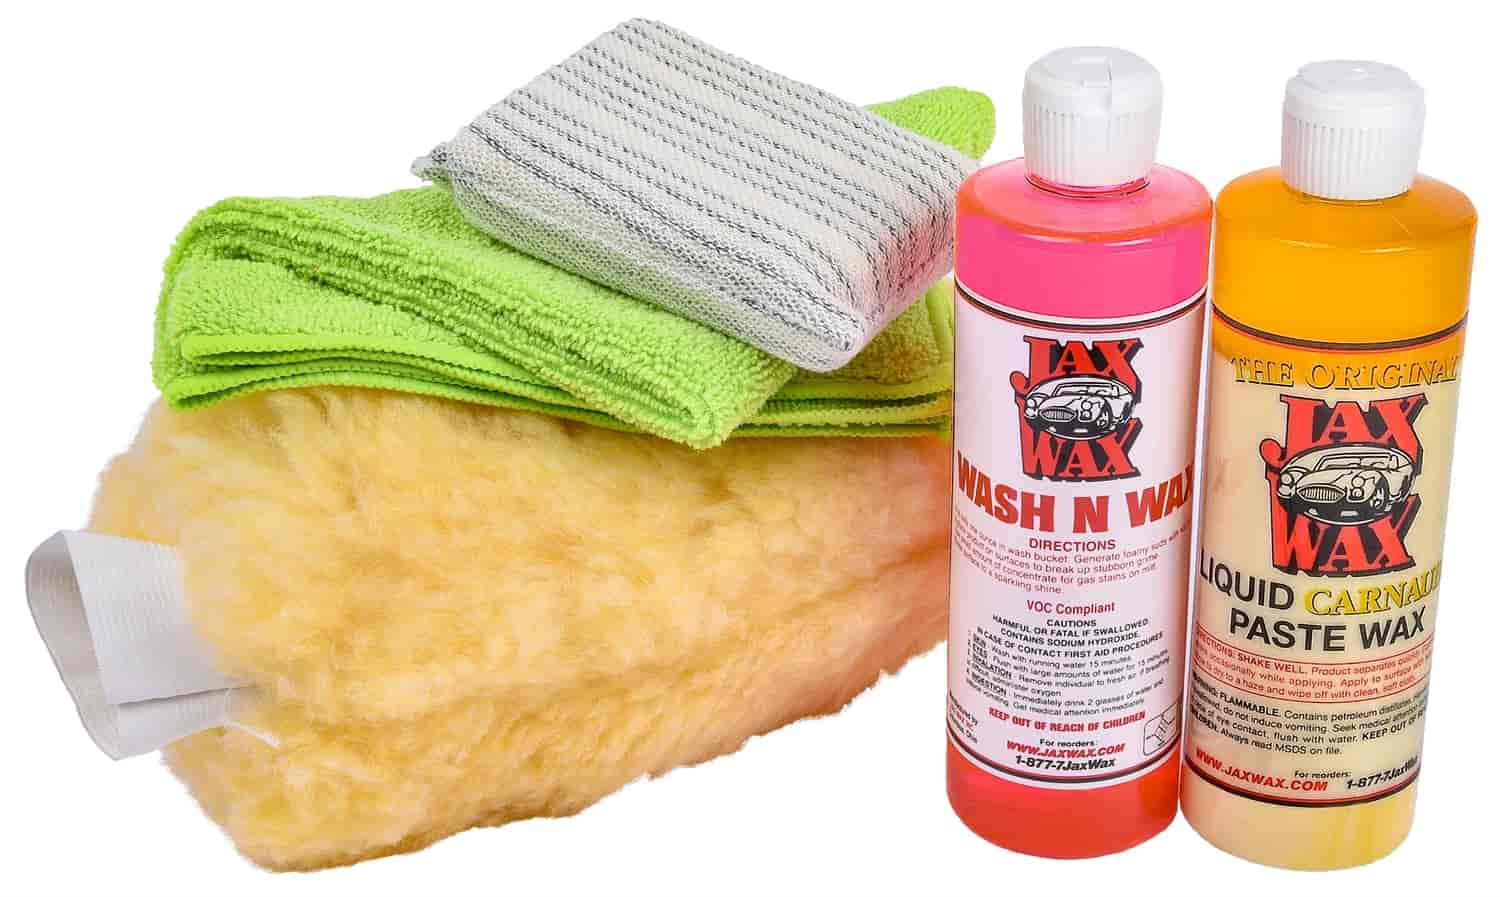 Jax Wax JWKCB1 - Jax Wax Exterior Wash & Detail Kits